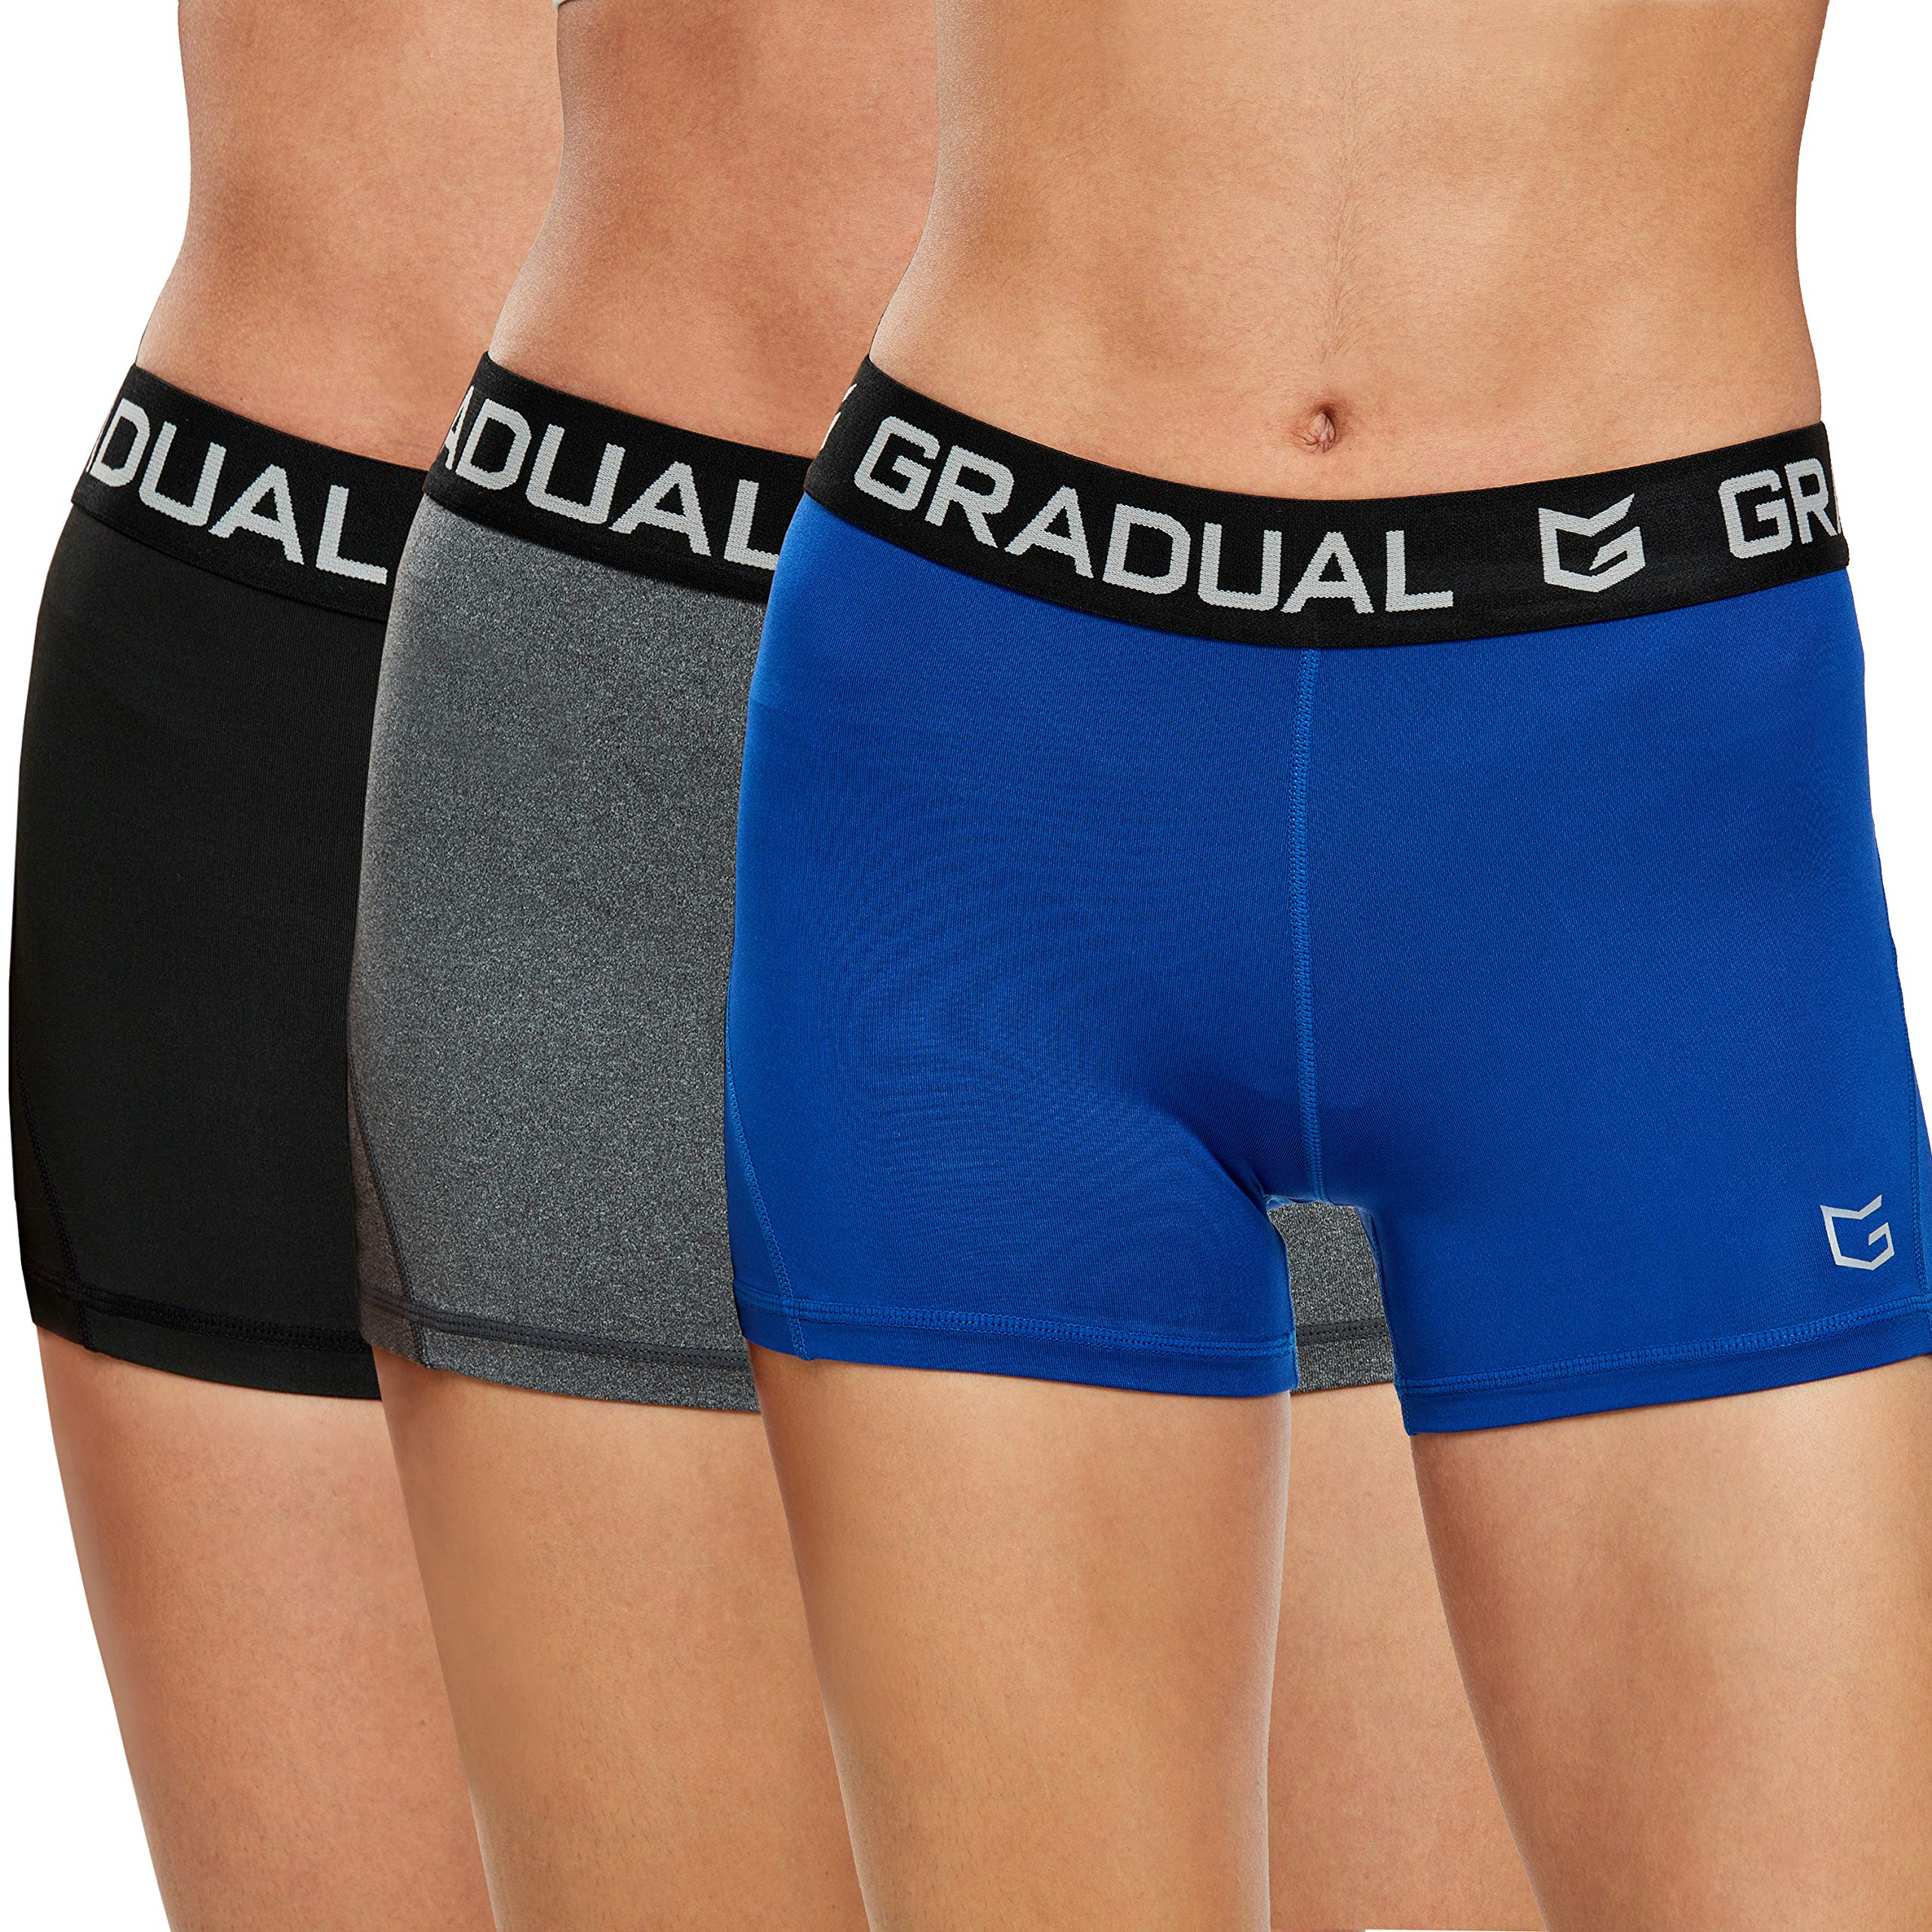 Women's Spandex Compression Volleyball Shorts 3'' Workout Pro Shorts for Women (3 Pack:Black/Blue/Gray, L) by G Gradual